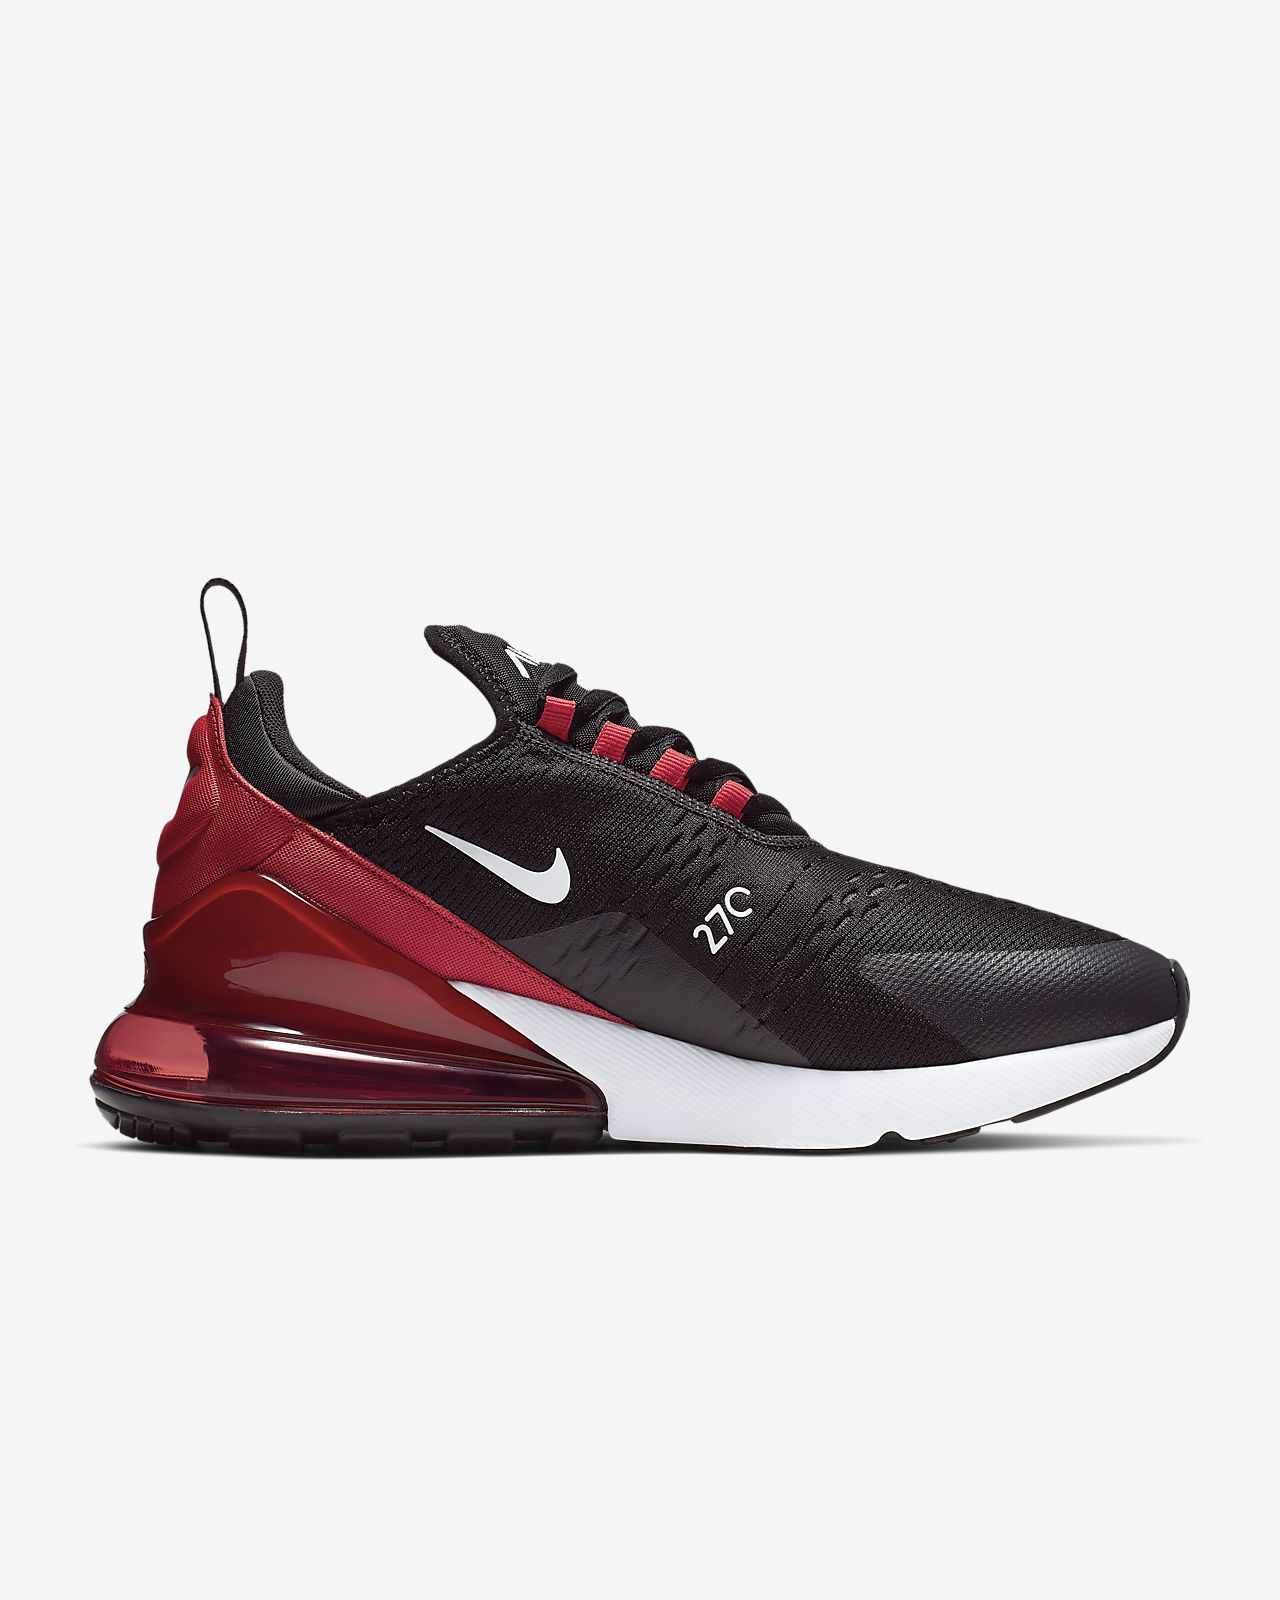 cheap for discount 0bb7f 8e6b9 ... Chaussure Nike Air Max 270 pour Homme